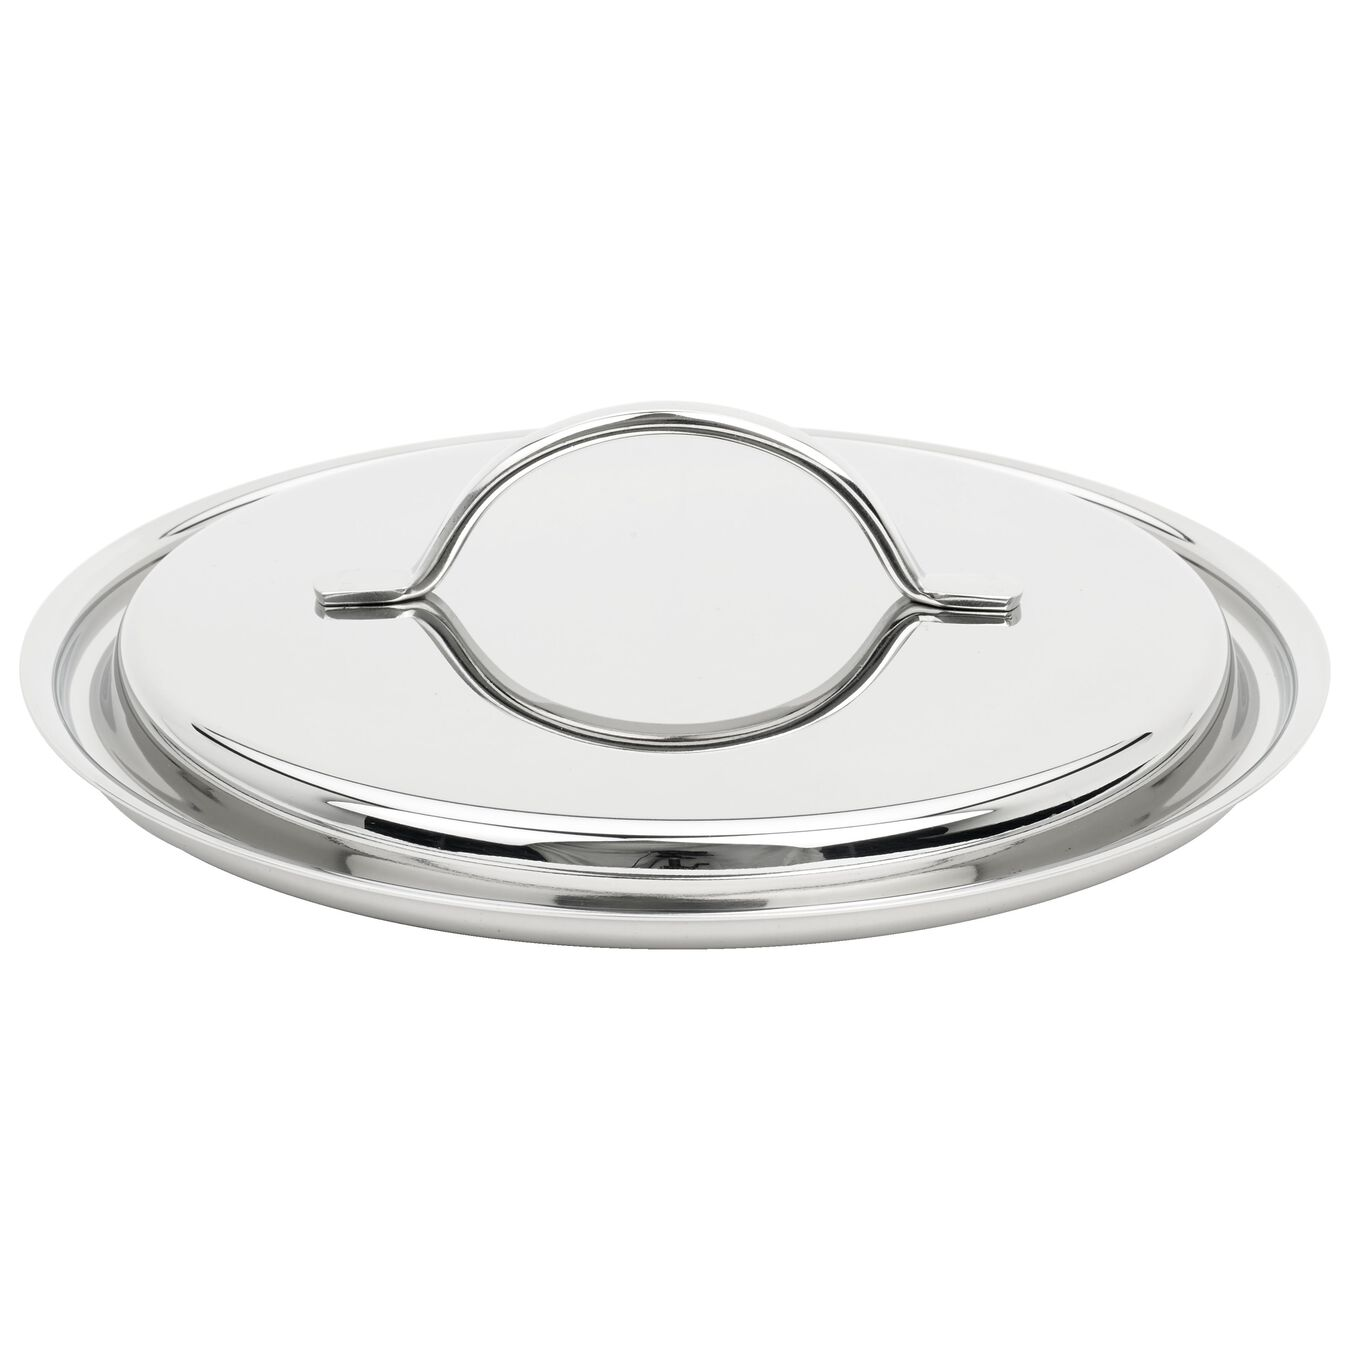 Couvercle 22 cm Inox 18/10,,large 1